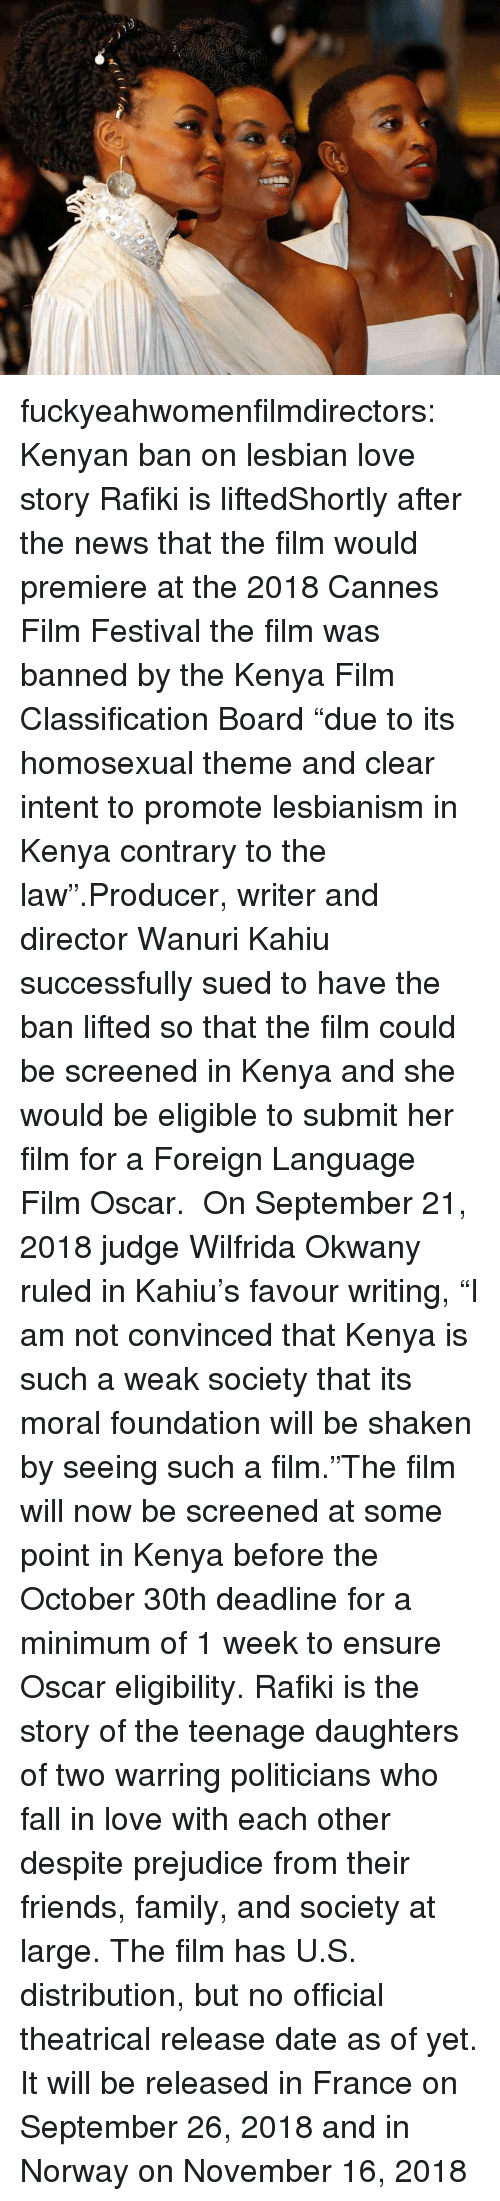 "prejudice: fuckyeahwomenfilmdirectors:  Kenyan ban on lesbian love story Rafiki is liftedShortly after the news that the film would premiere at the 2018 Cannes Film Festival the film was banned by the Kenya Film Classification Board ""due to its homosexual theme and clear intent to promote lesbianism in Kenya contrary to the law"".Producer, writer and director Wanuri Kahiu successfully sued to have the ban lifted so that the film could be screened in Kenya and she would be eligible to submit her film for a Foreign Language Film Oscar.  On September 21, 2018 judge Wilfrida Okwany ruled in Kahiu's favour writing, ""I am not convinced that Kenya is such a weak society that its moral foundation will be shaken by seeing such a film.""The film will now be screened at some point in Kenya before the October 30th deadline for a minimum of 1 week to ensure Oscar eligibility. Rafiki is the story of the teenage daughters of two warring politicians who fall in love with each other despite prejudice from their friends, family, and society at large. The film has U.S. distribution, but no official theatrical release date as of yet. It will be released in France on September 26, 2018 and in Norway on November 16, 2018"